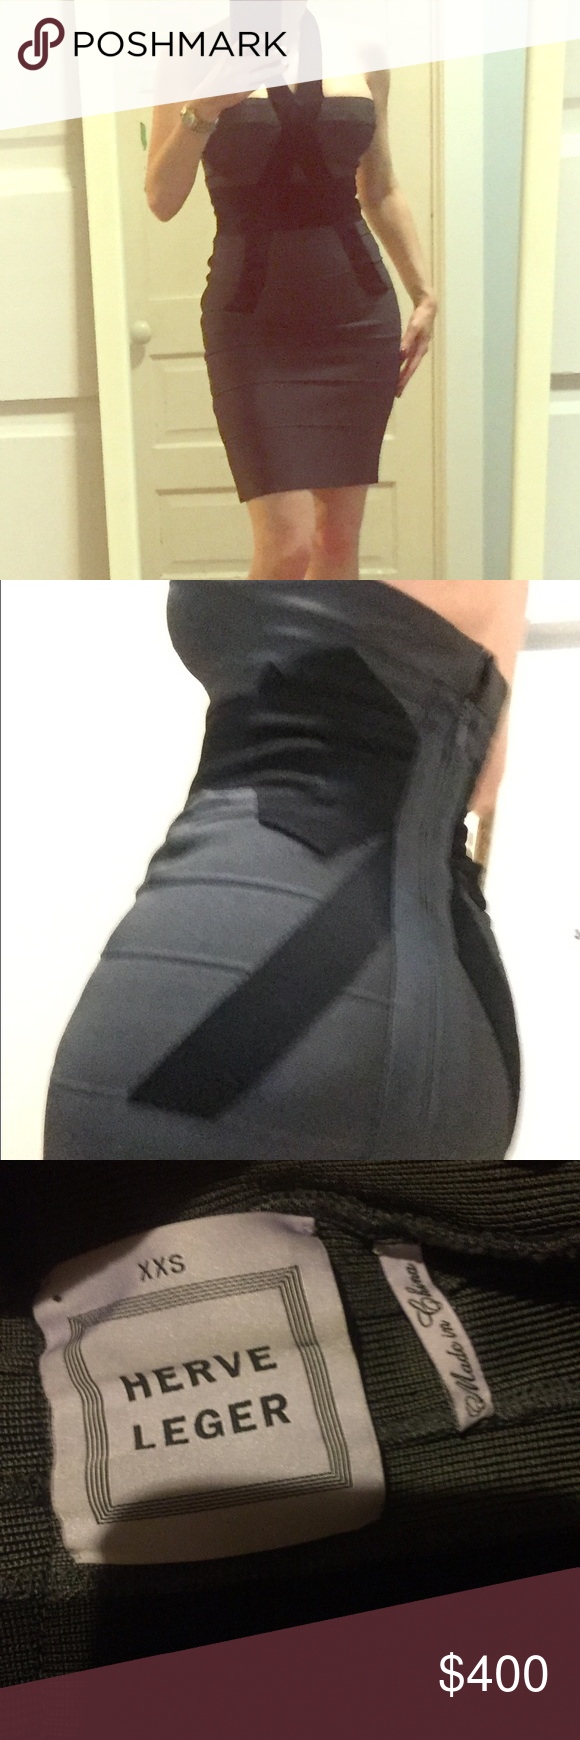 "Herve Leger gray bow bandage dress XXS Herve Leger size XXS gray bodycon bandage bow dress, authentic, EUC. Haven't worn in ages and just been in my closet kept inside out, no flaws but the tag is a little loose. I'm 5'1"" for size reference. This one fits bigger than some Herve Leger XXS. I'm not as rail thin as I used to be and still fits great. Herve Leger Dresses Mini"